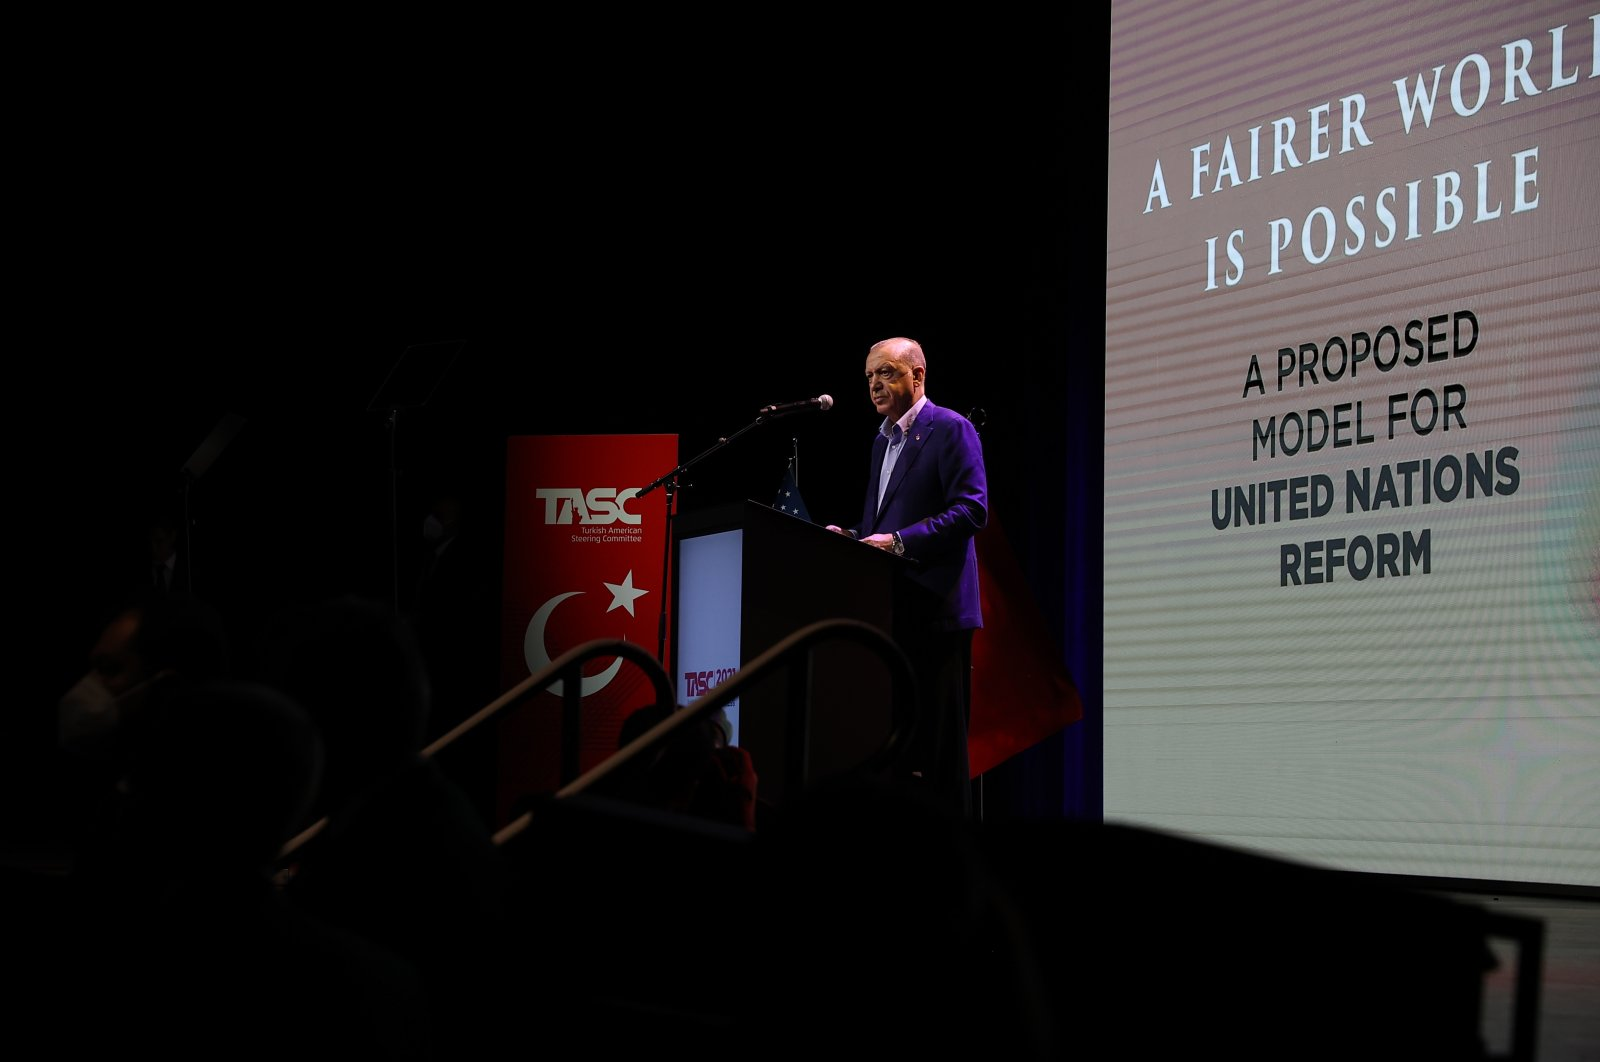 President Recep Tayyip Erdoğan speaks at the conference organized by the Turkish American National Steering Committee (TASC) in New York City, U.S., Sept. 19, 2021. (AA Photo)